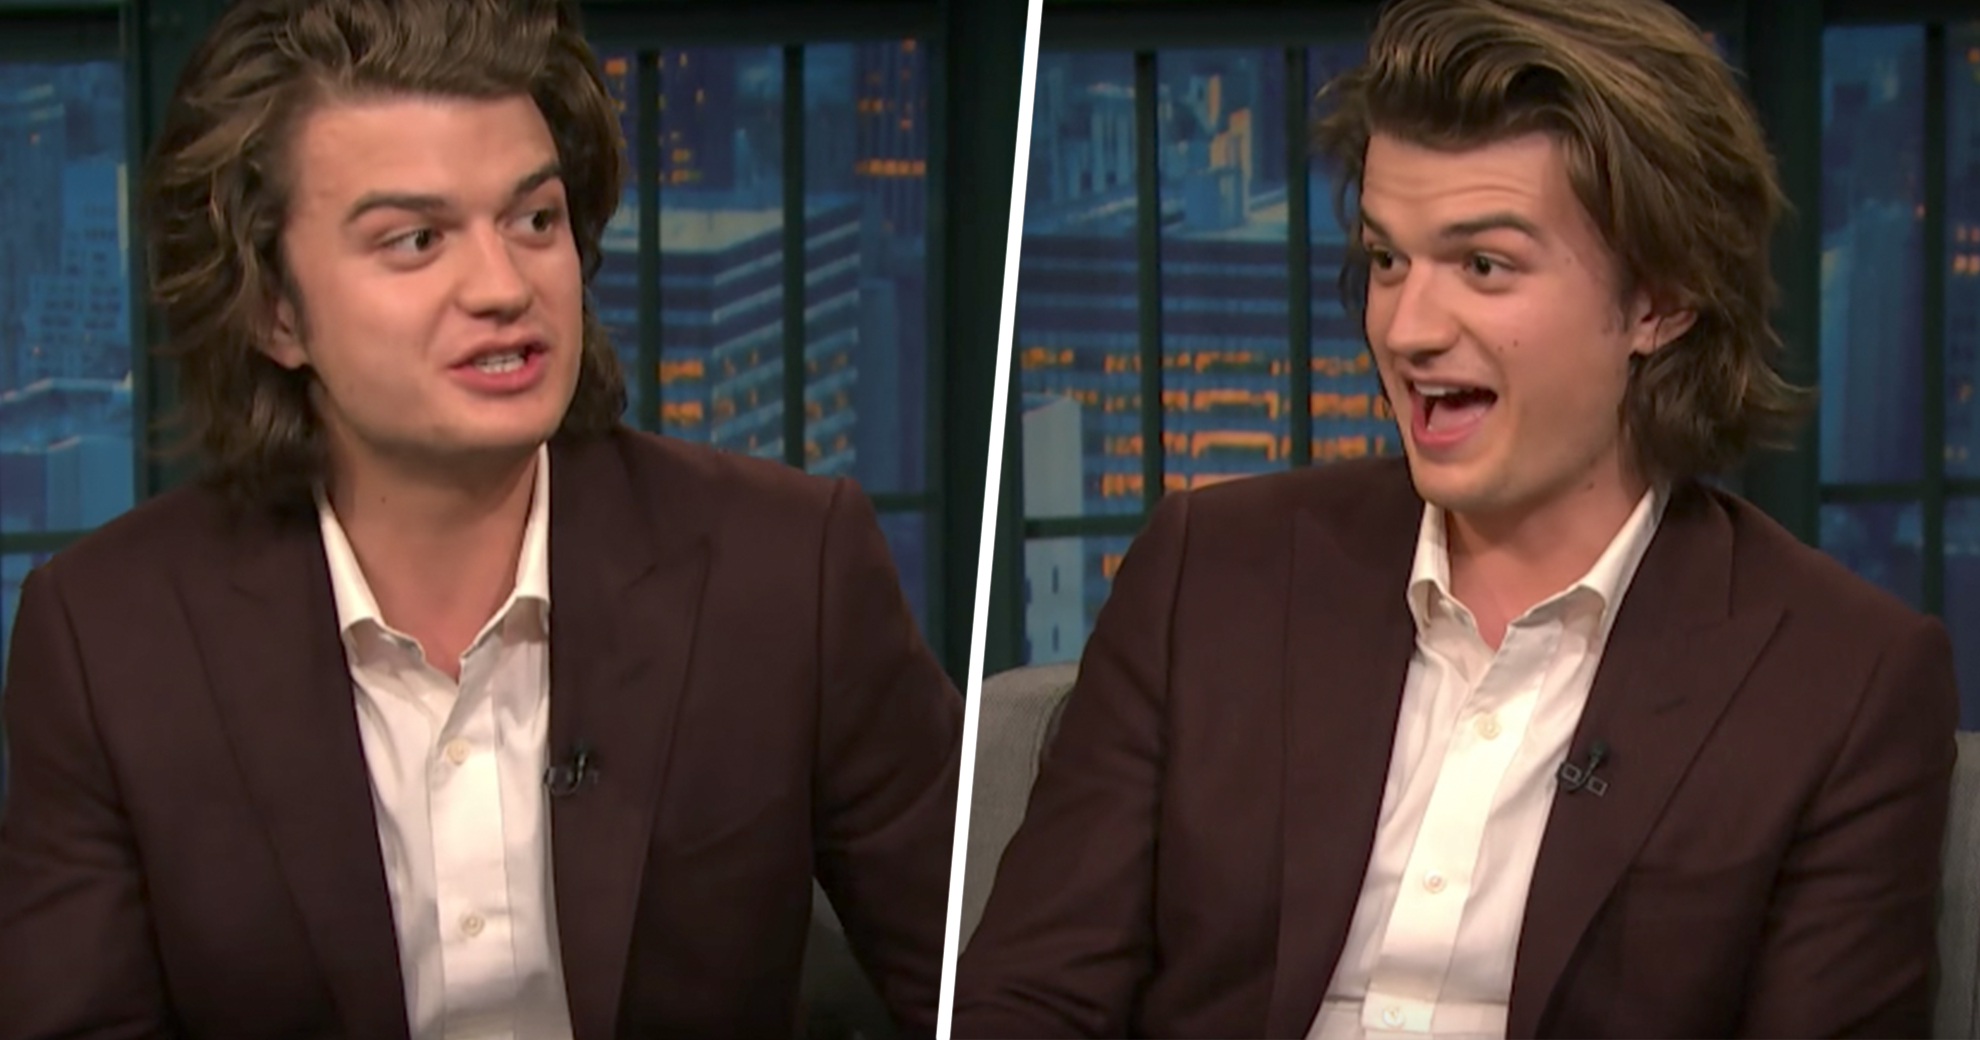 Stranger Things Star Joe Keery Tells Seth Meyers He Wasn't Prepared For Those Tight '80s Jeans